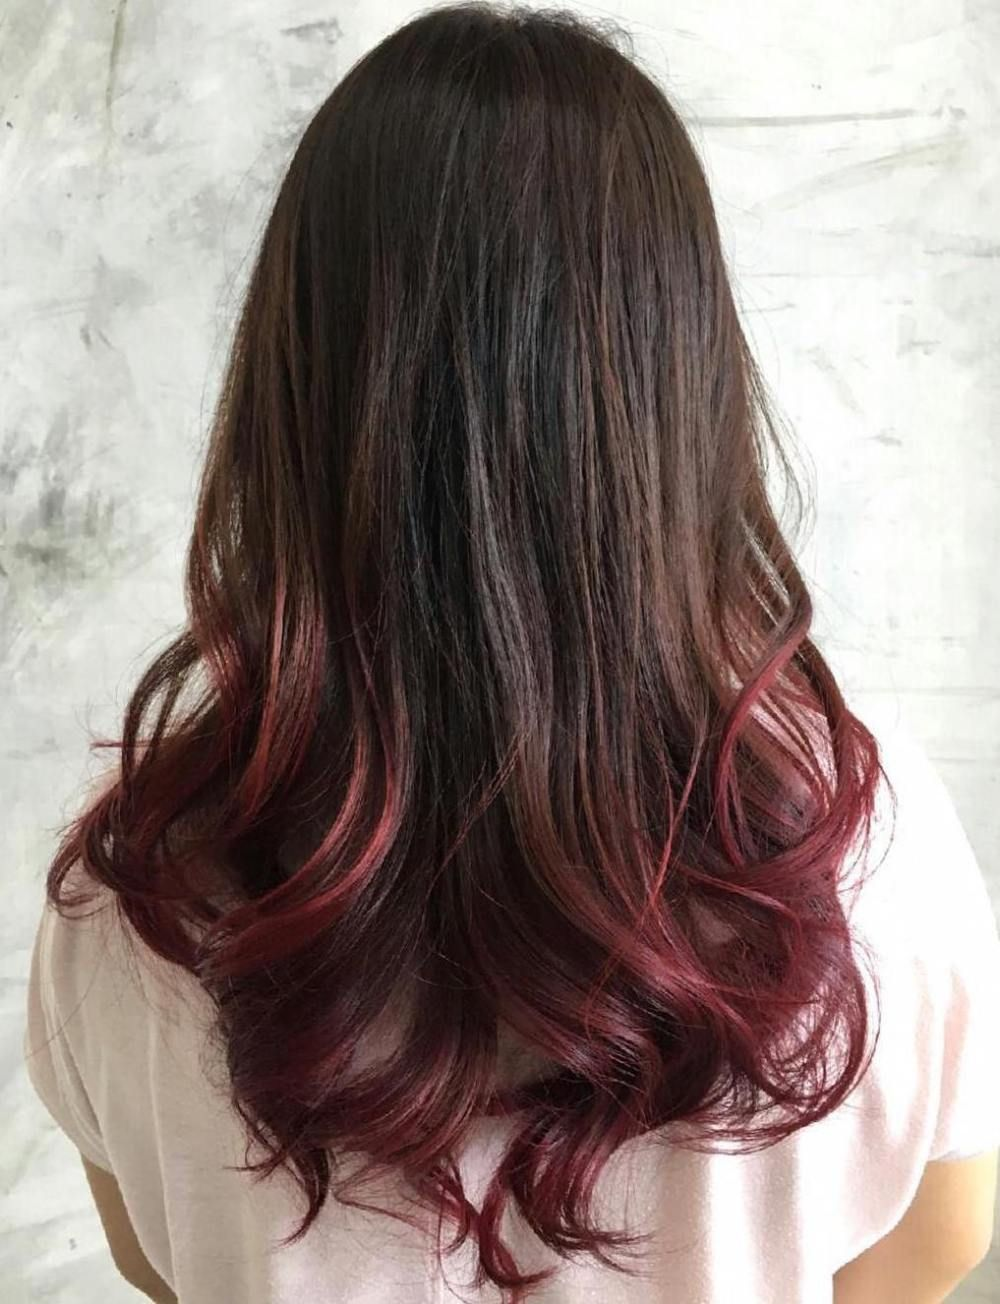 40 Vivid Ideas For Black Ombre Hair Burgundy Brown Hair Dipped Hair Brown Hair Dye